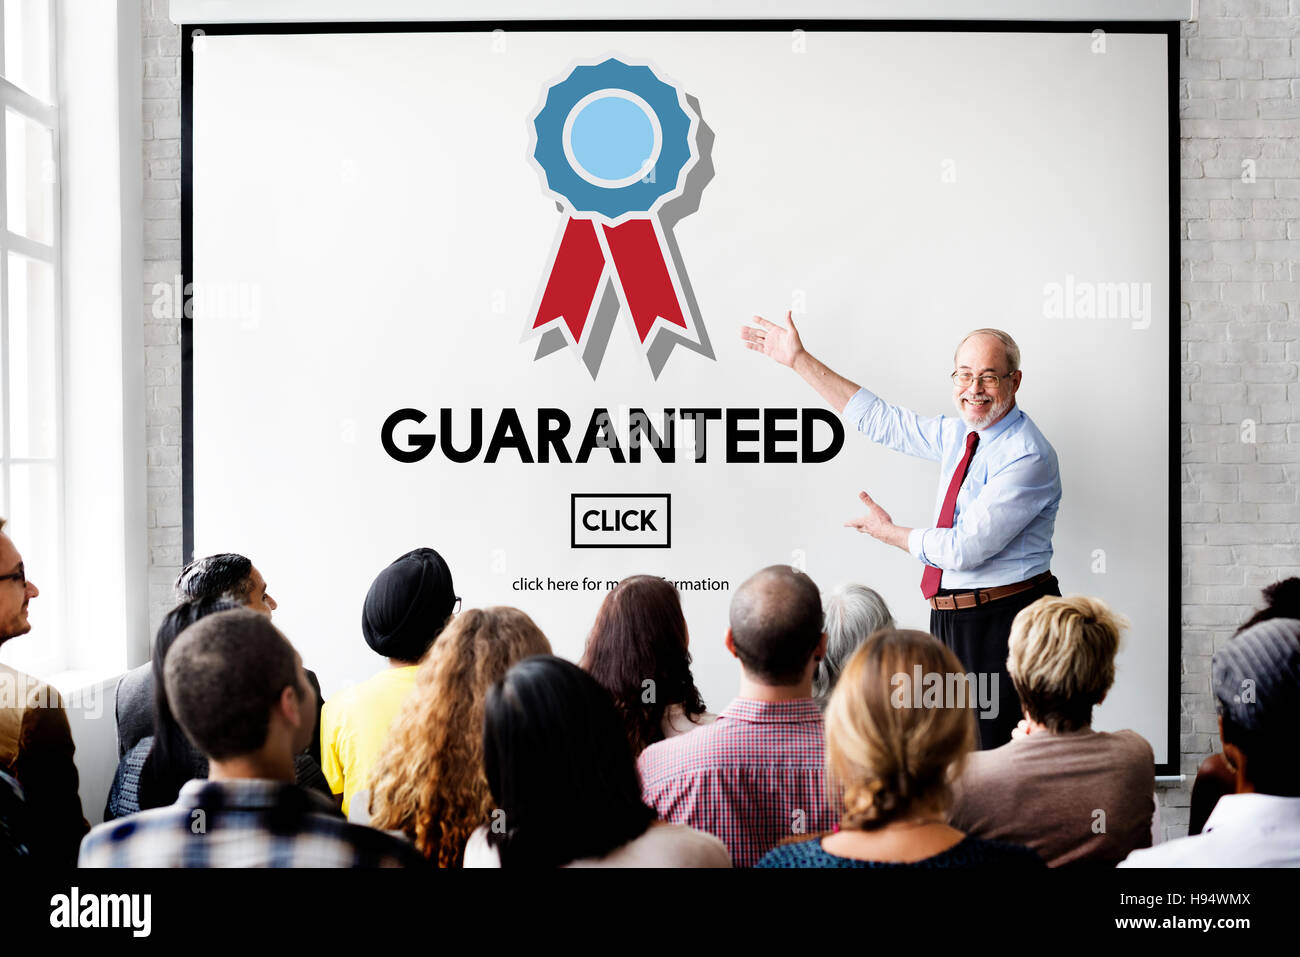 Guaranteed Warranty Quality Safety Service Concept - Stock Image